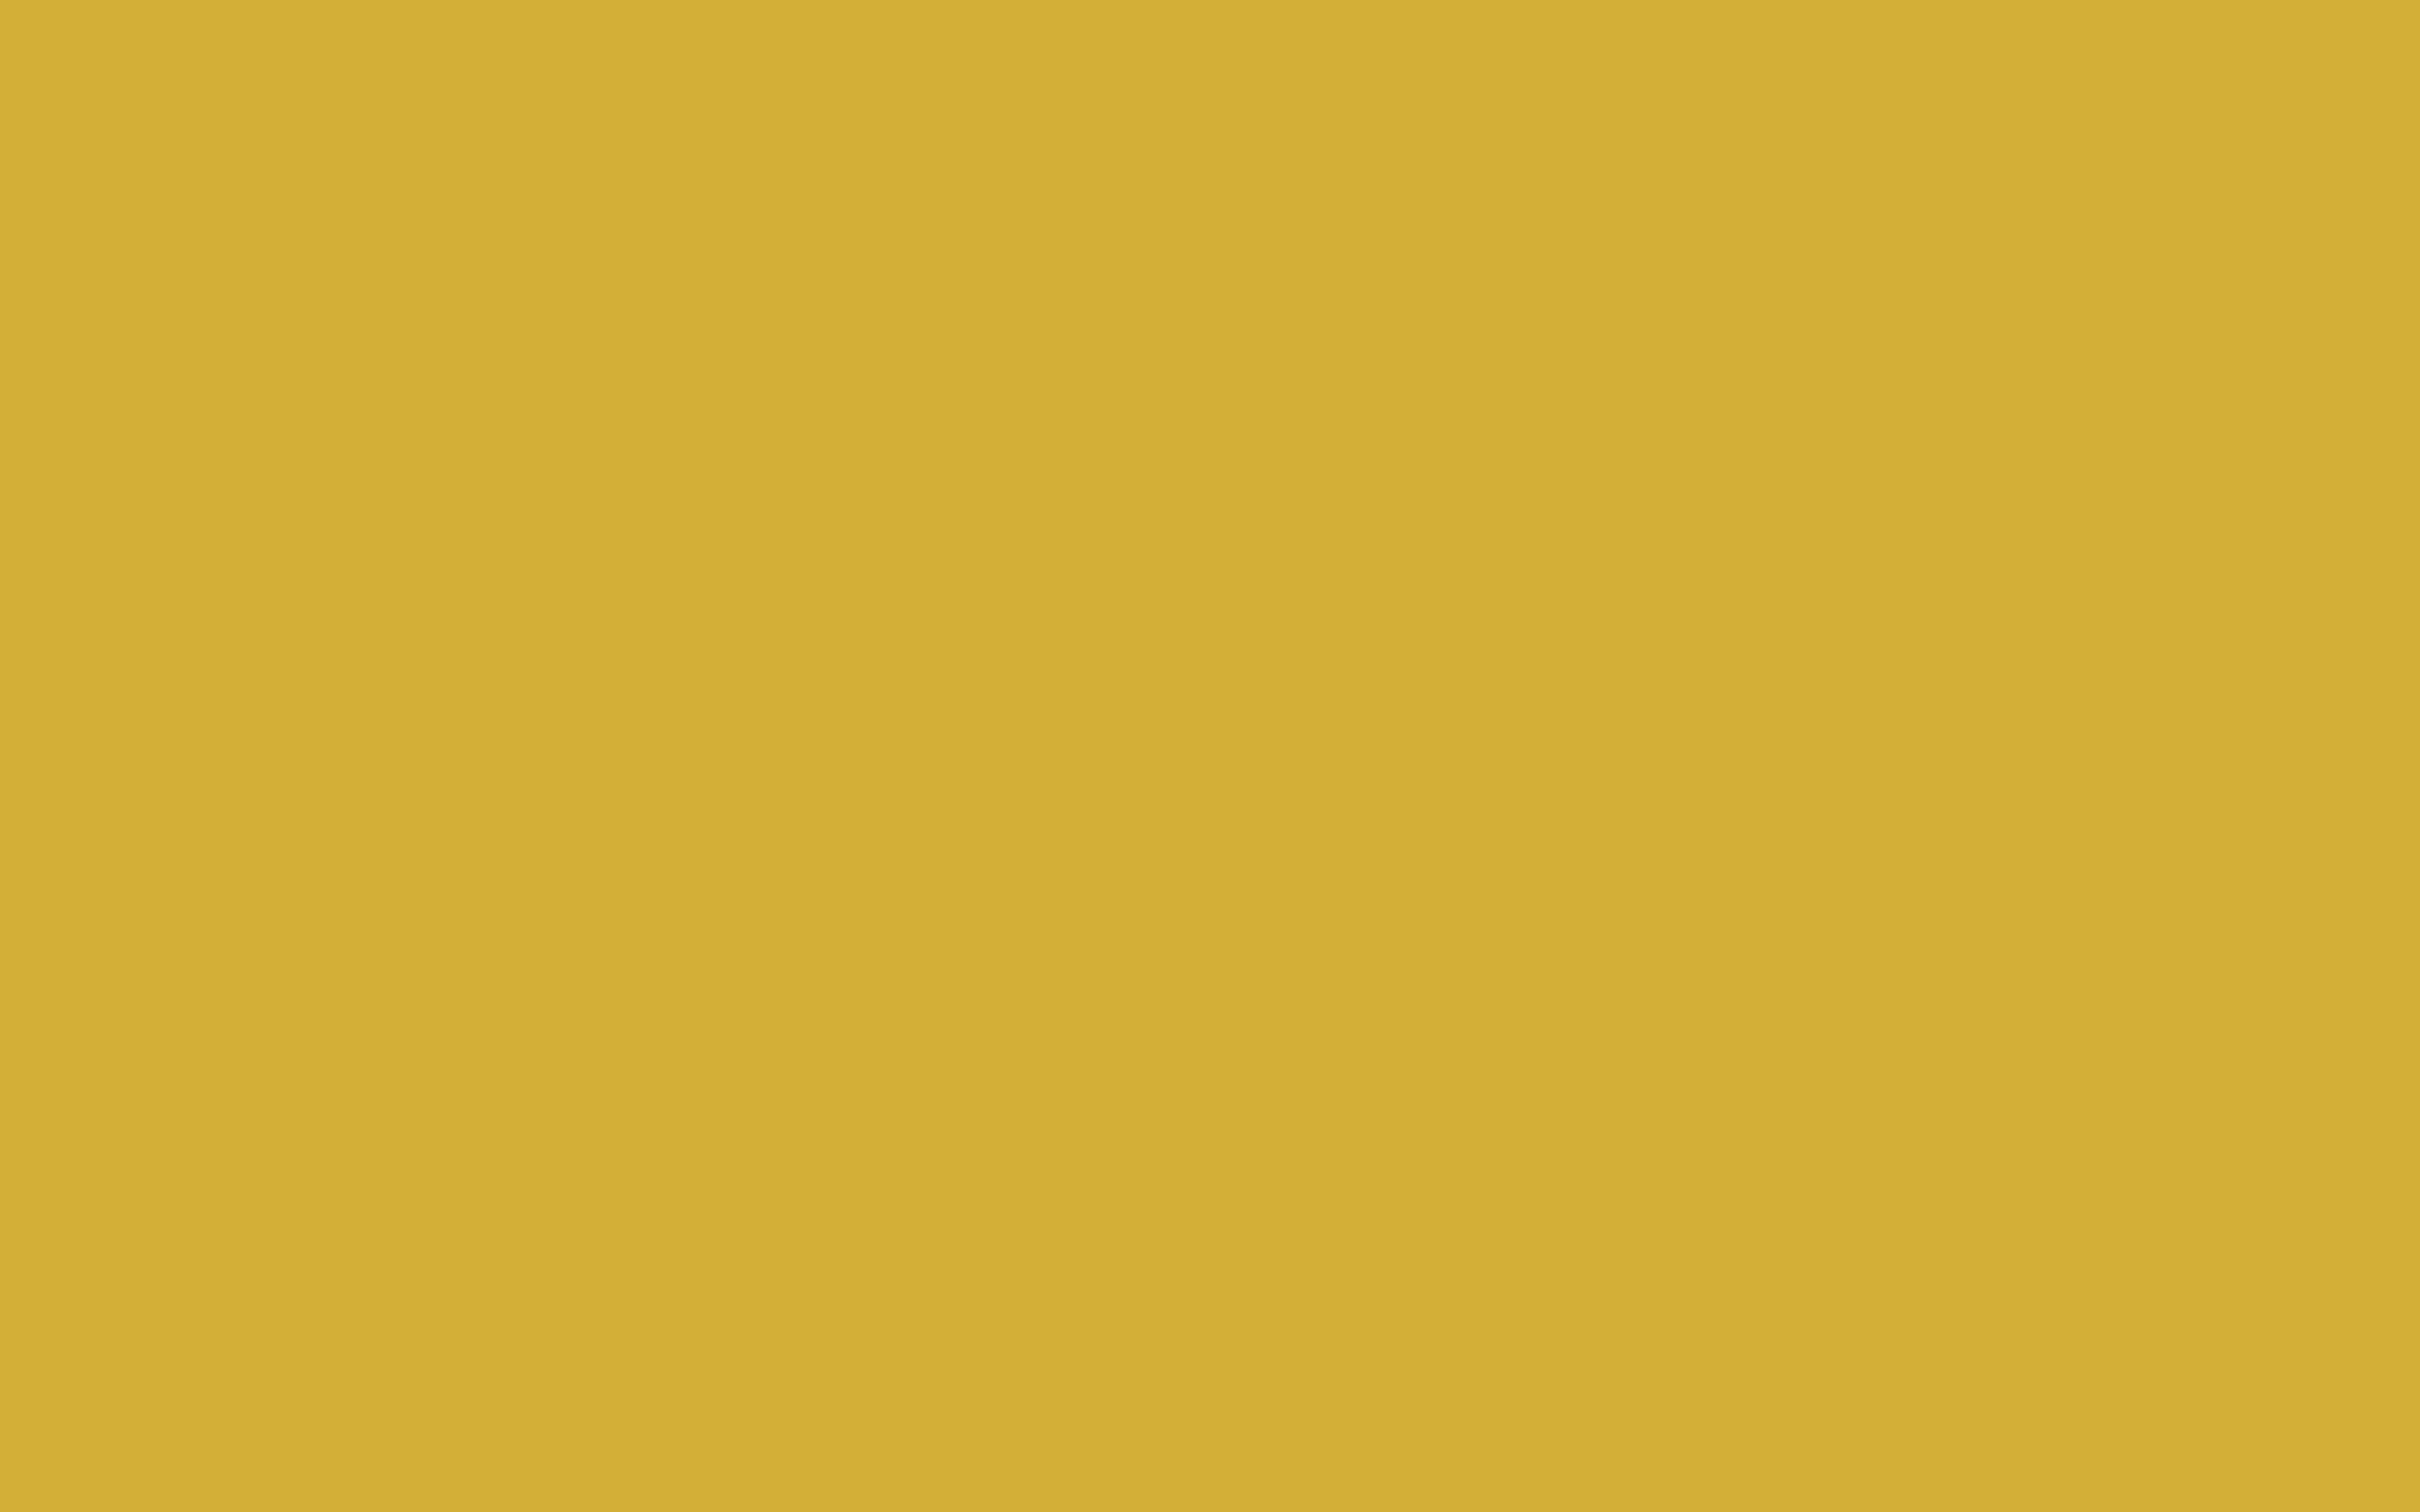 2880x1800 resolution Gold Metallic solid color background view 2880x1800